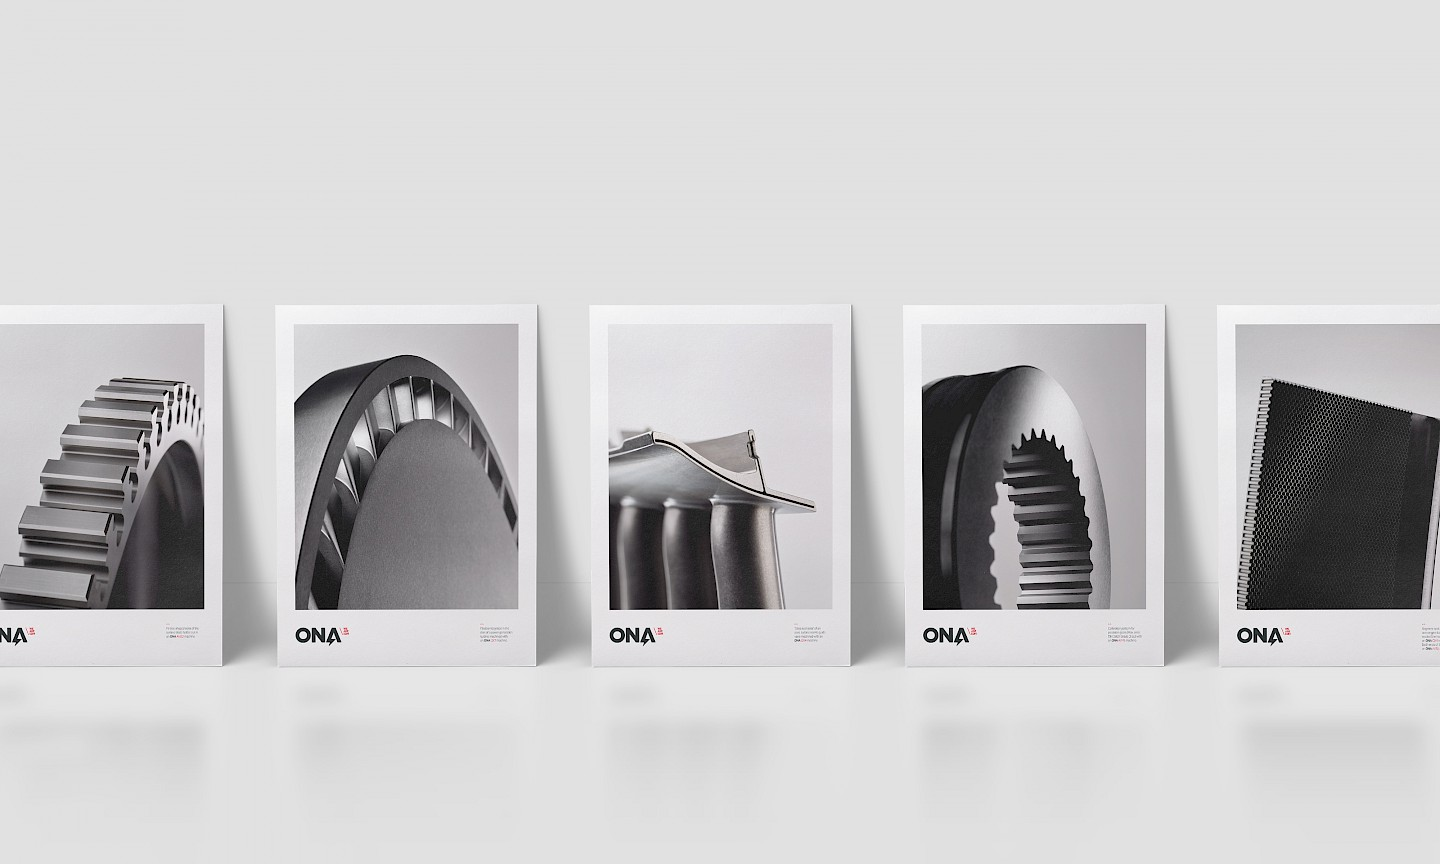 design ona narrative technology move branding digital print spaces 06